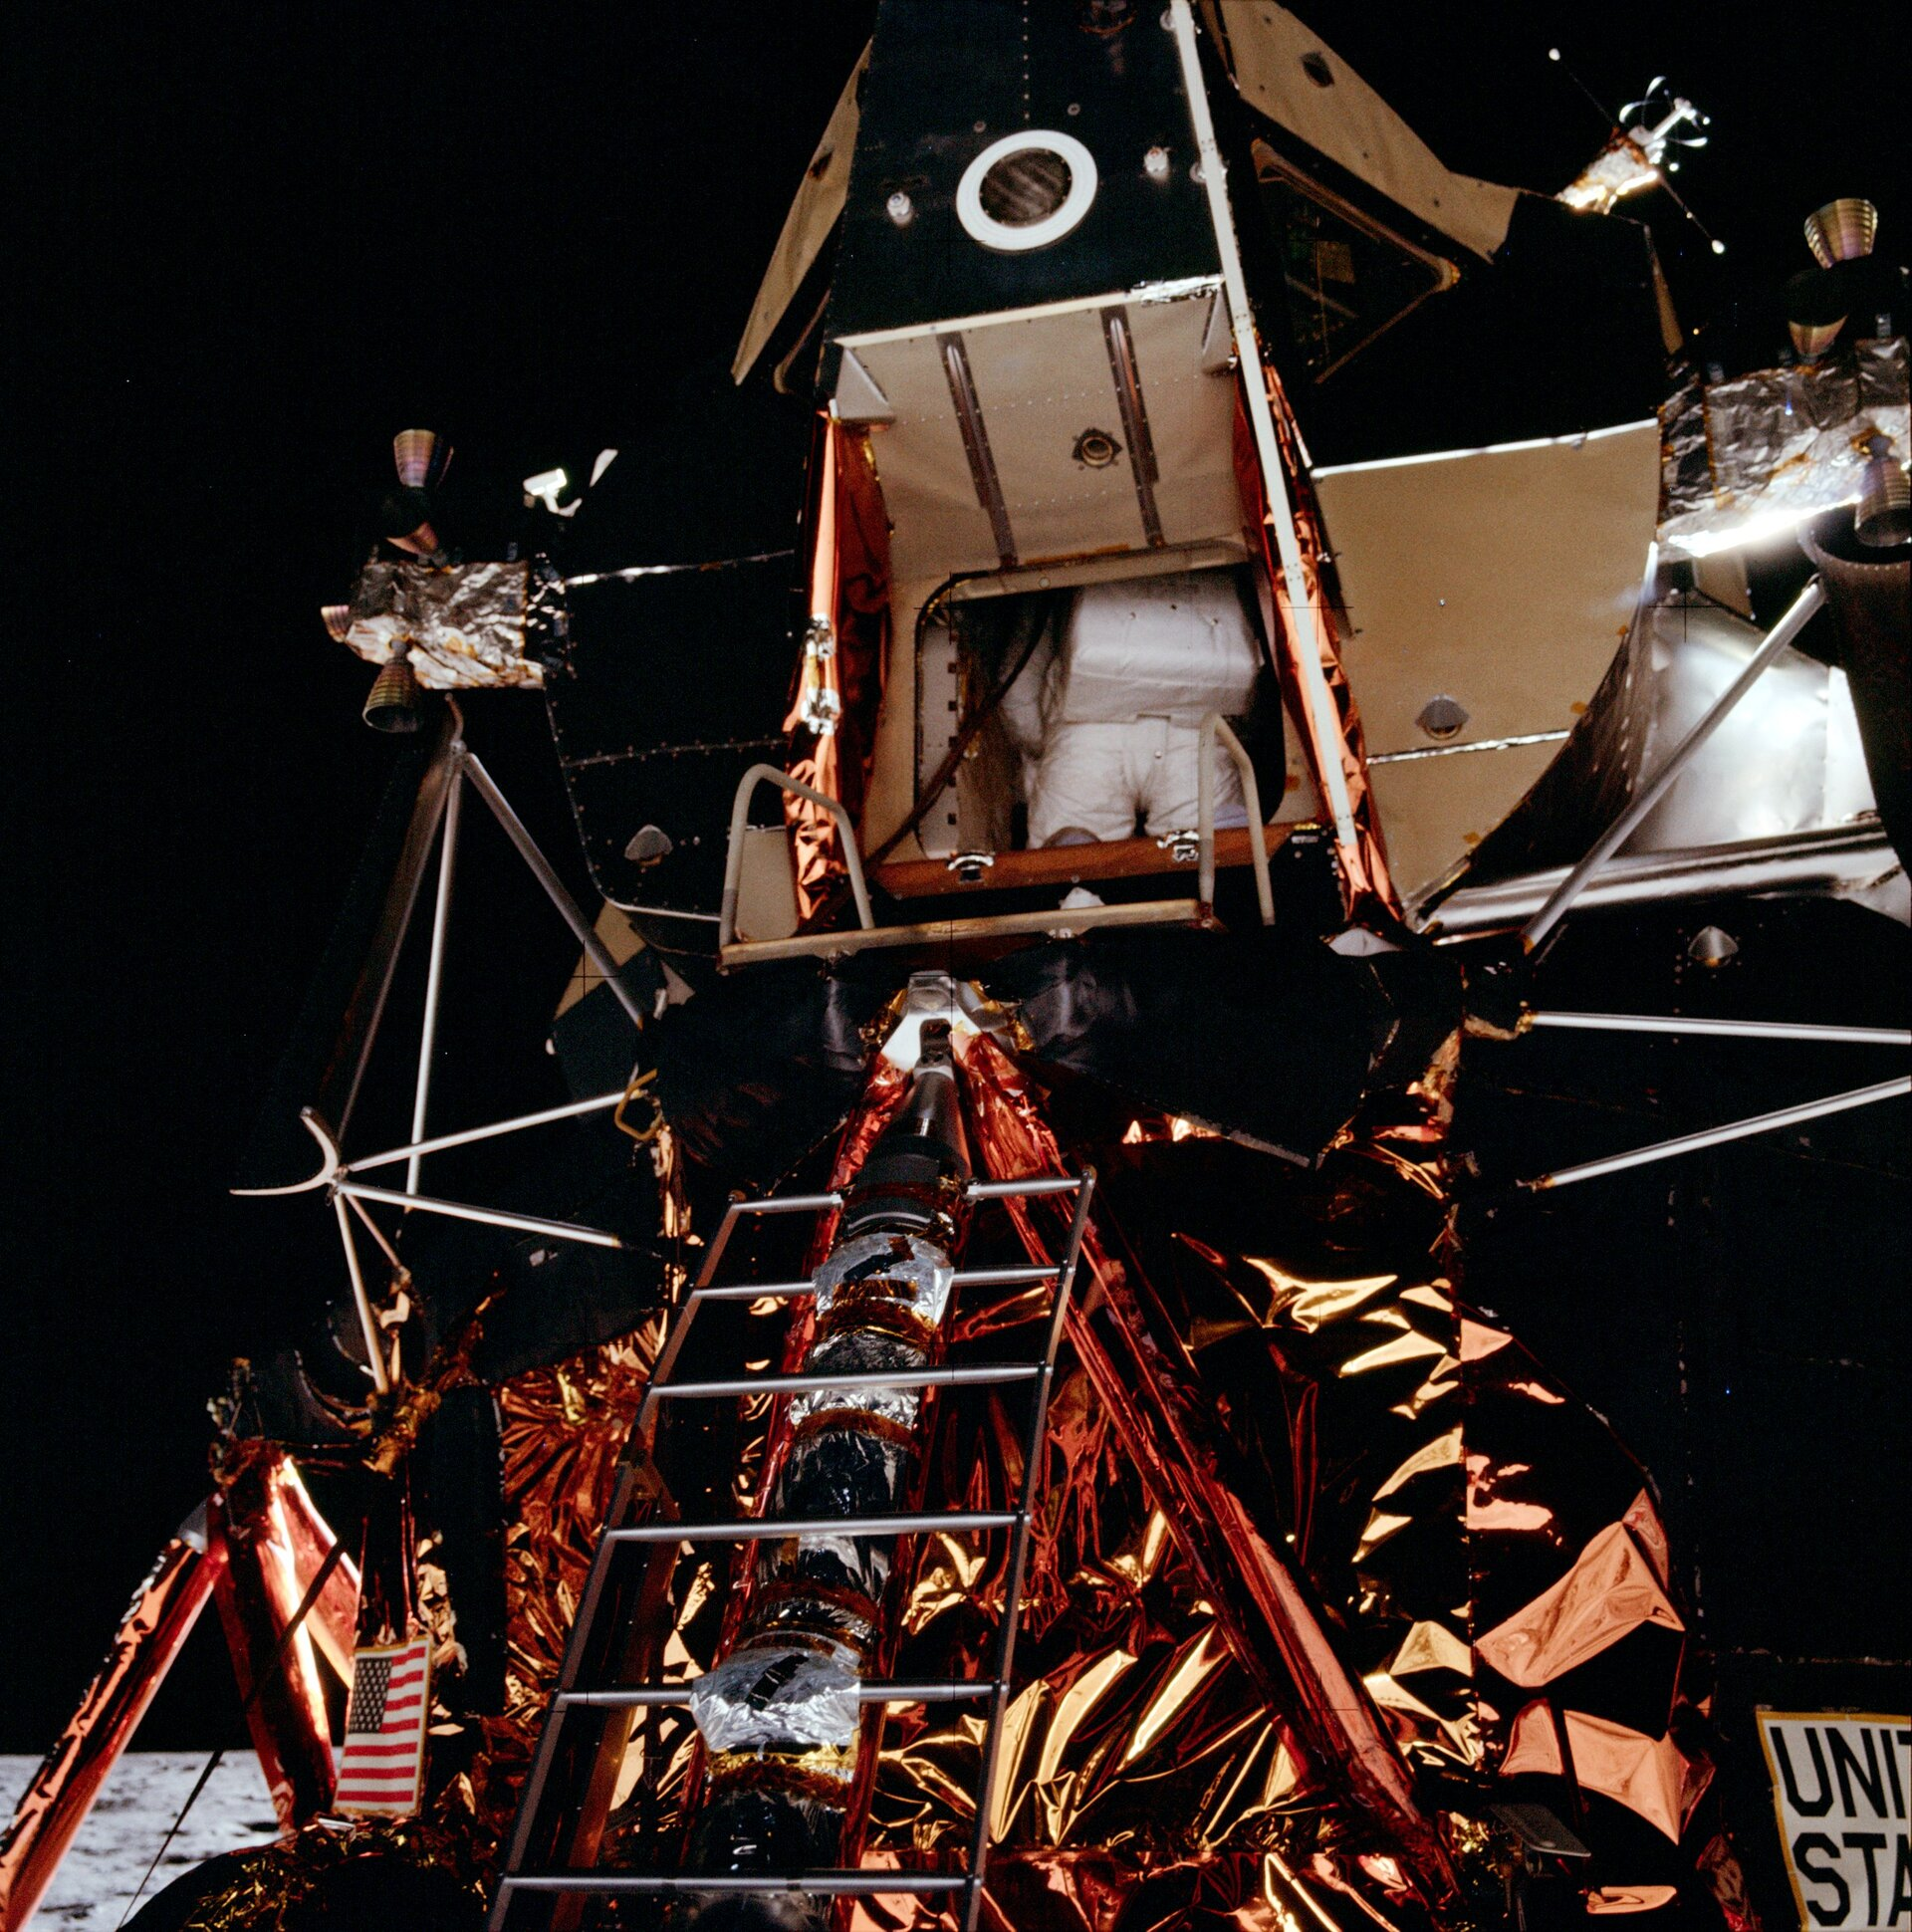 Aldrin backs out of the Lunar Module